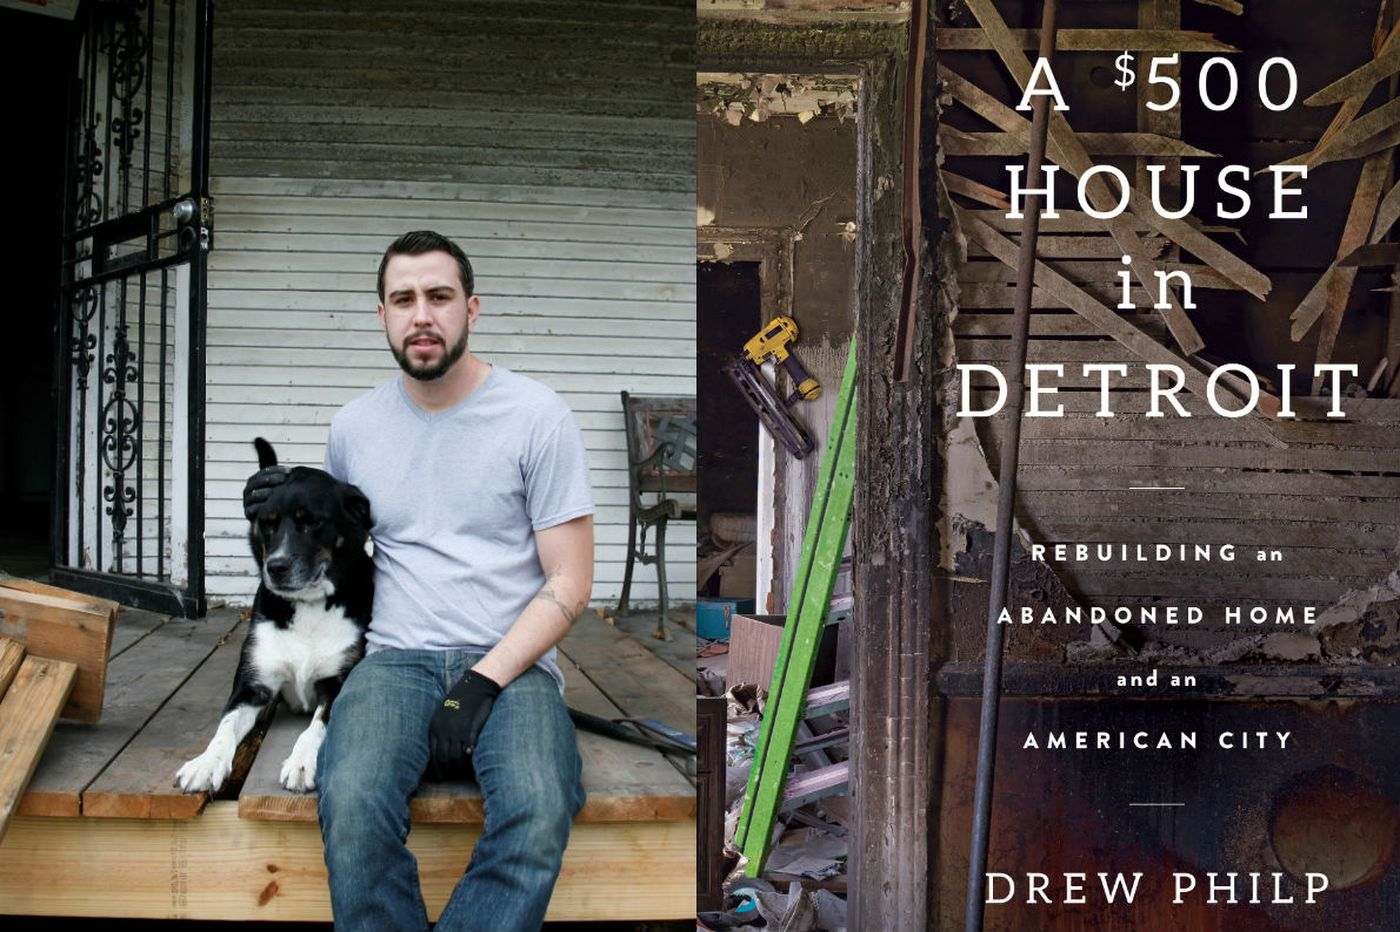 Drew Philp's '$500 House in Detroit': Tale of an urban pioneer